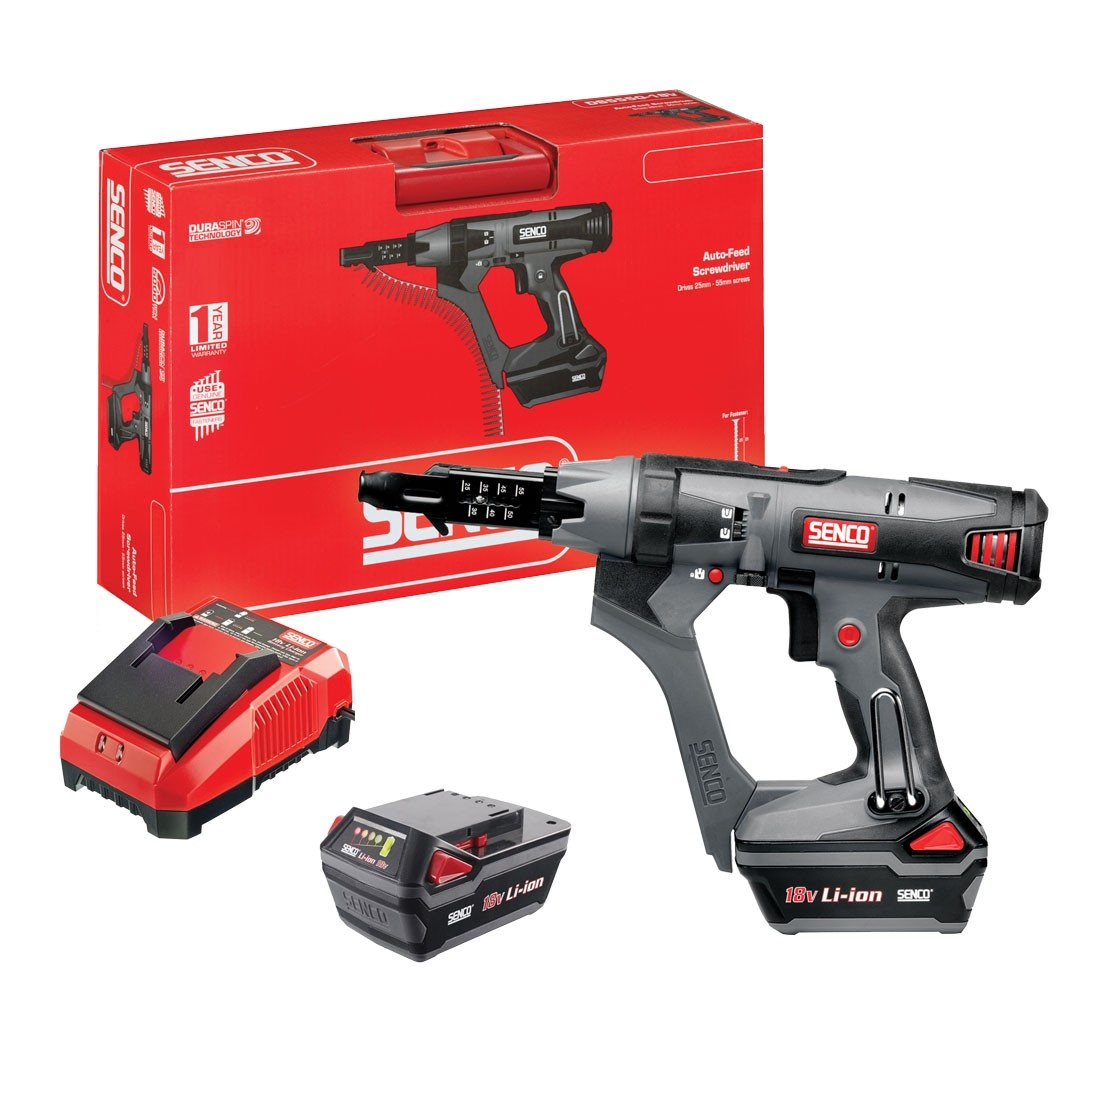 Senco Duraspin DS5550-18V Cordless Li-Ion Drywall Screwdriver